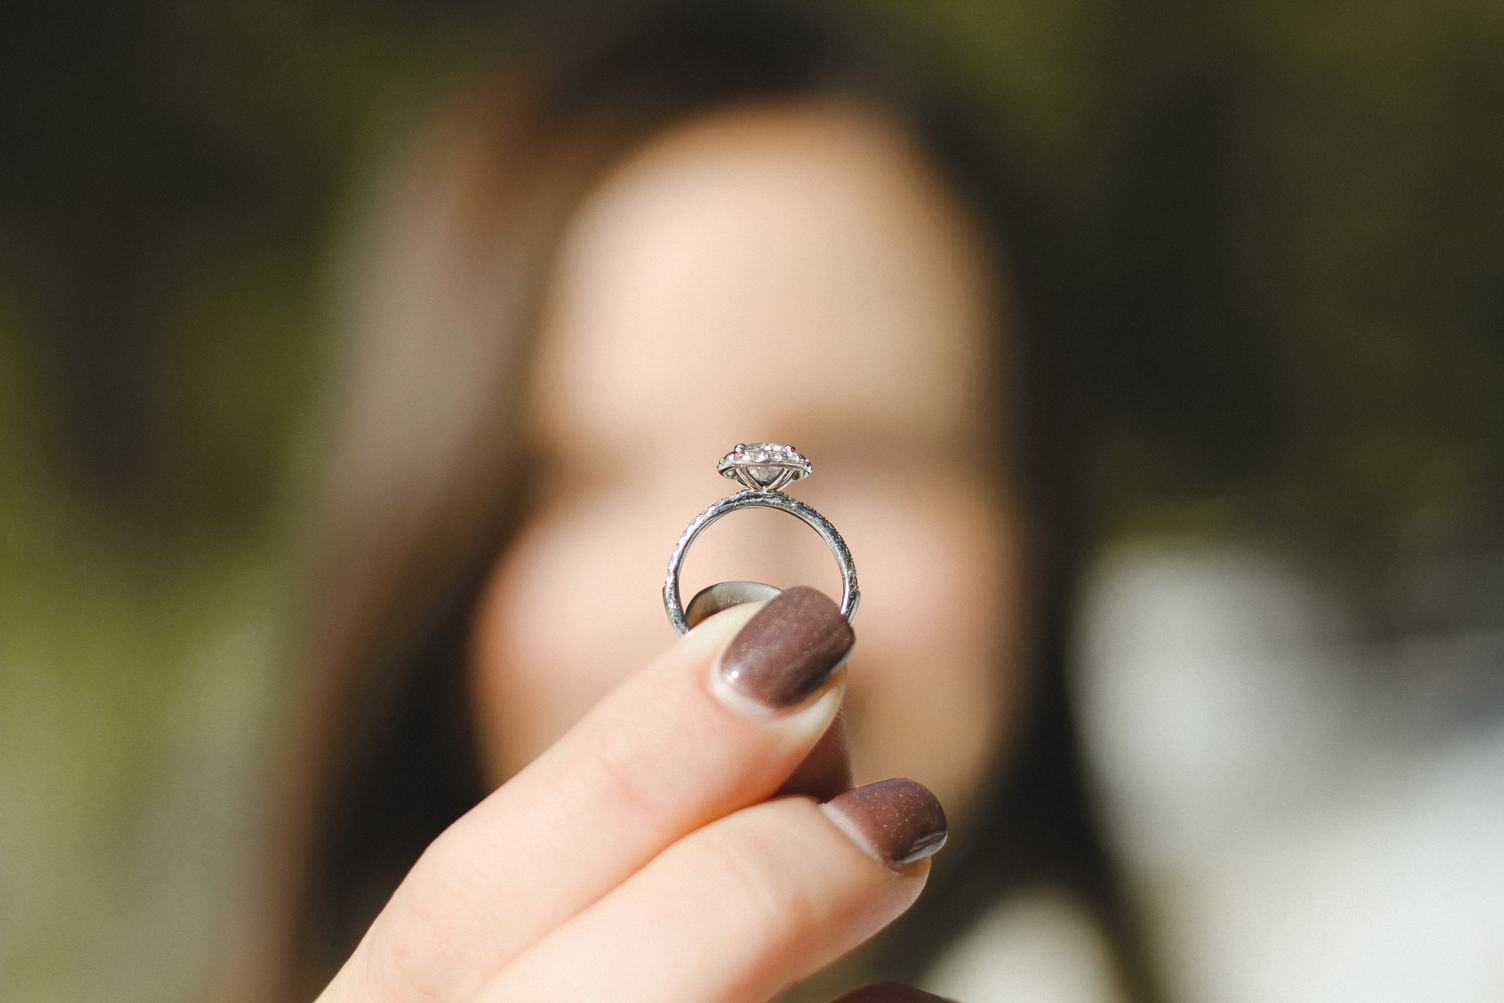 Woman Holding Engagement Ring in her Hand